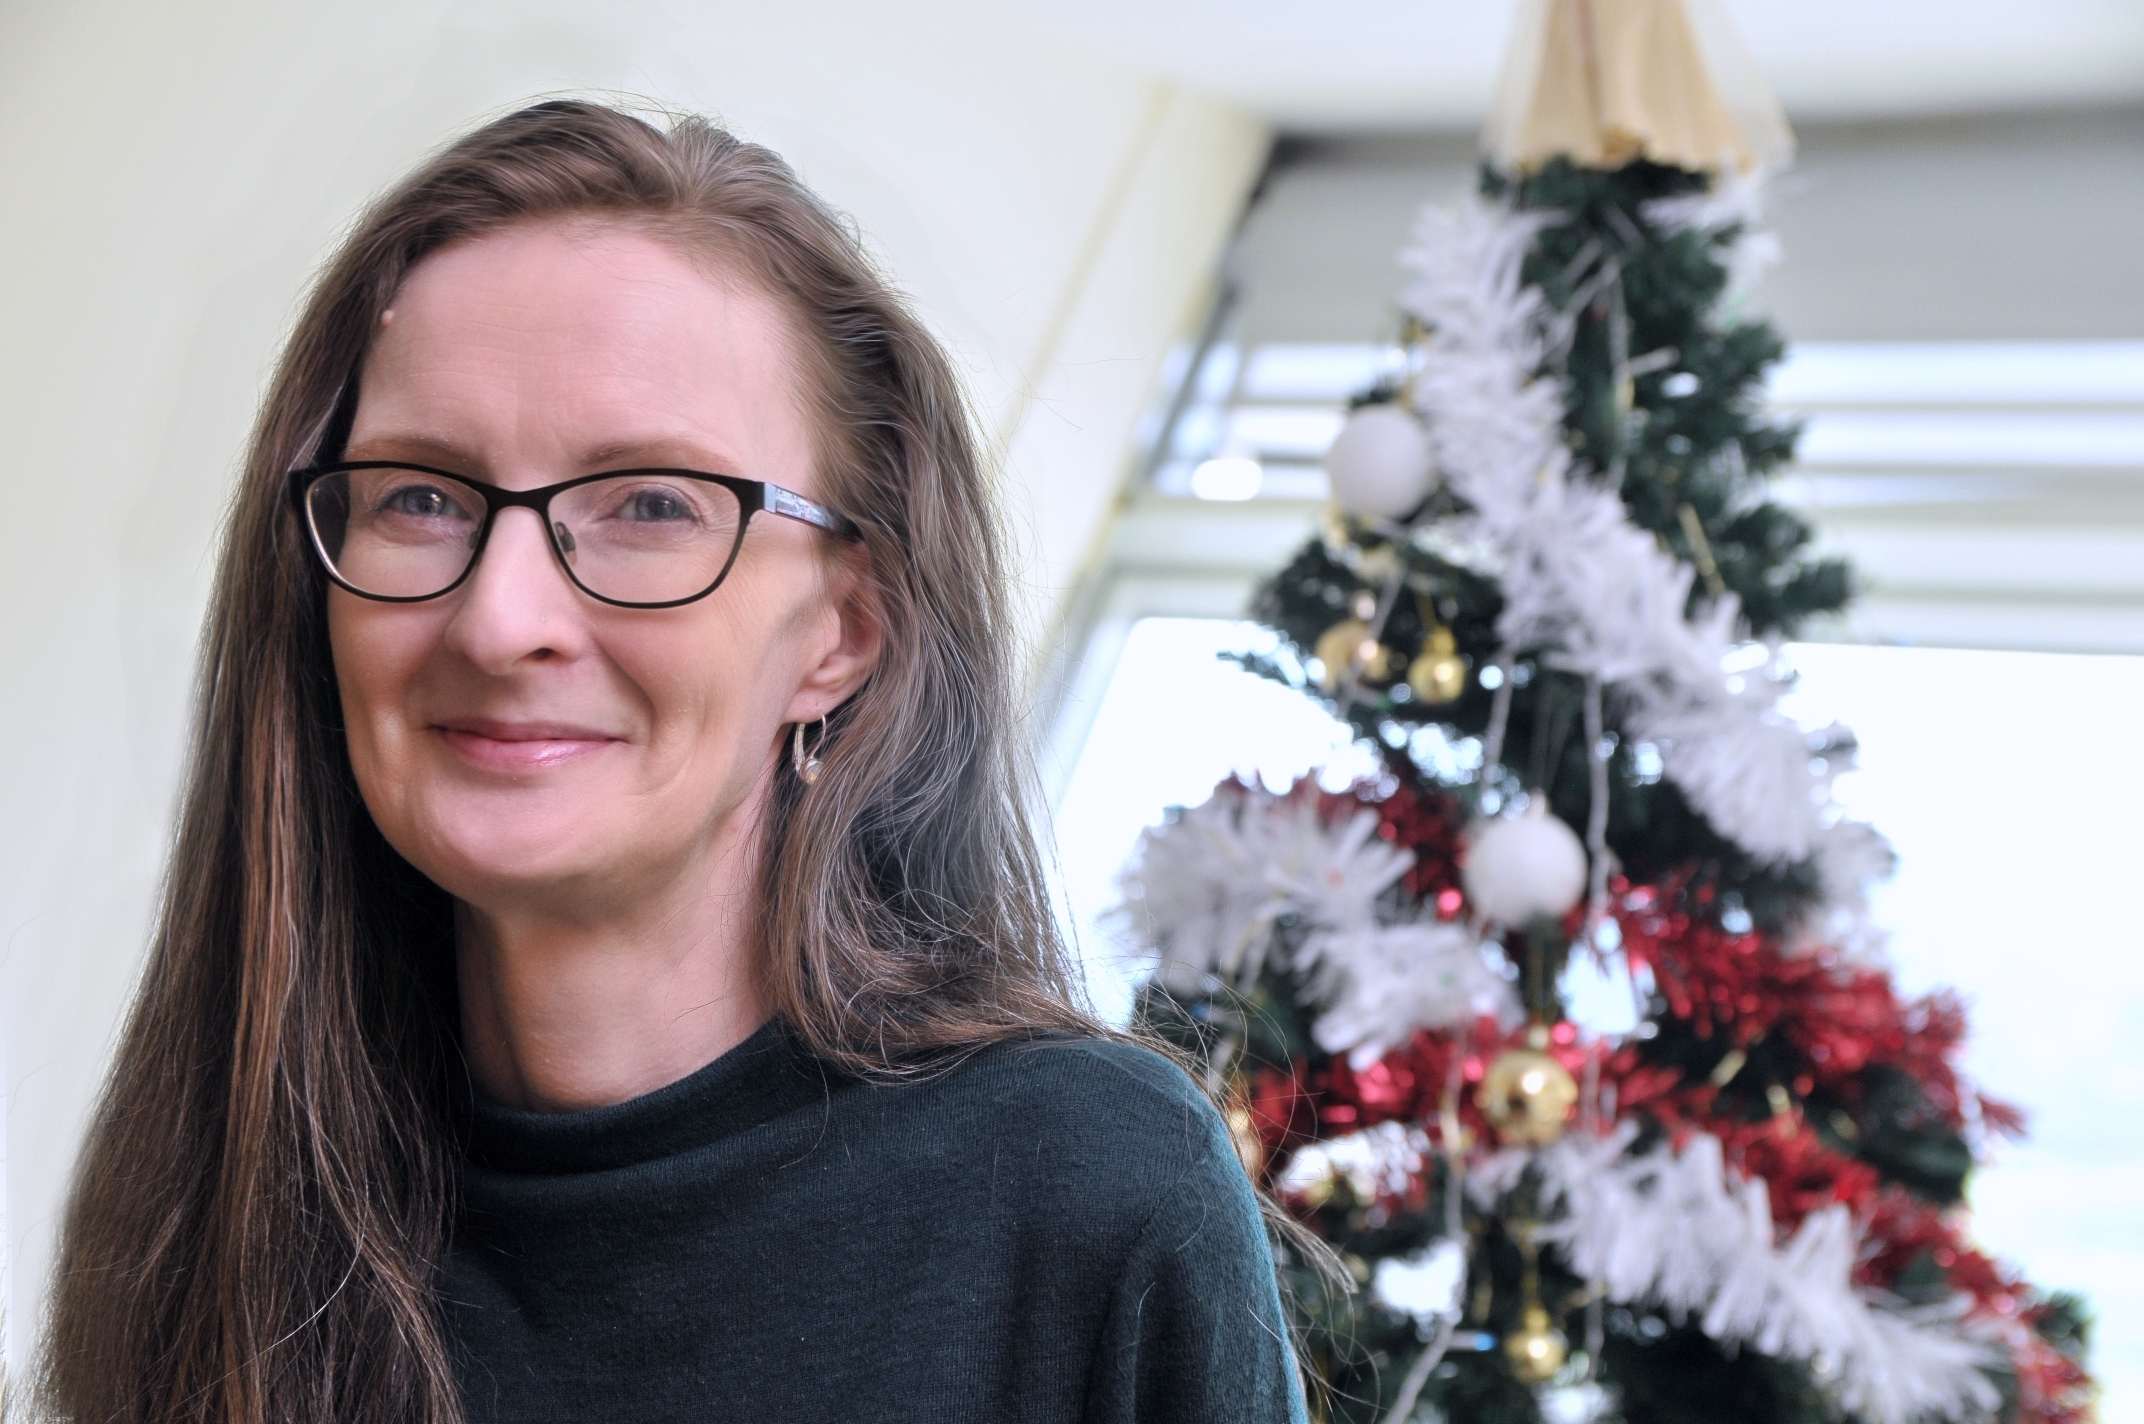 Anne-Marie Fraser, from Harrow Weald, is looking forward to a 'normal' Christmas this year